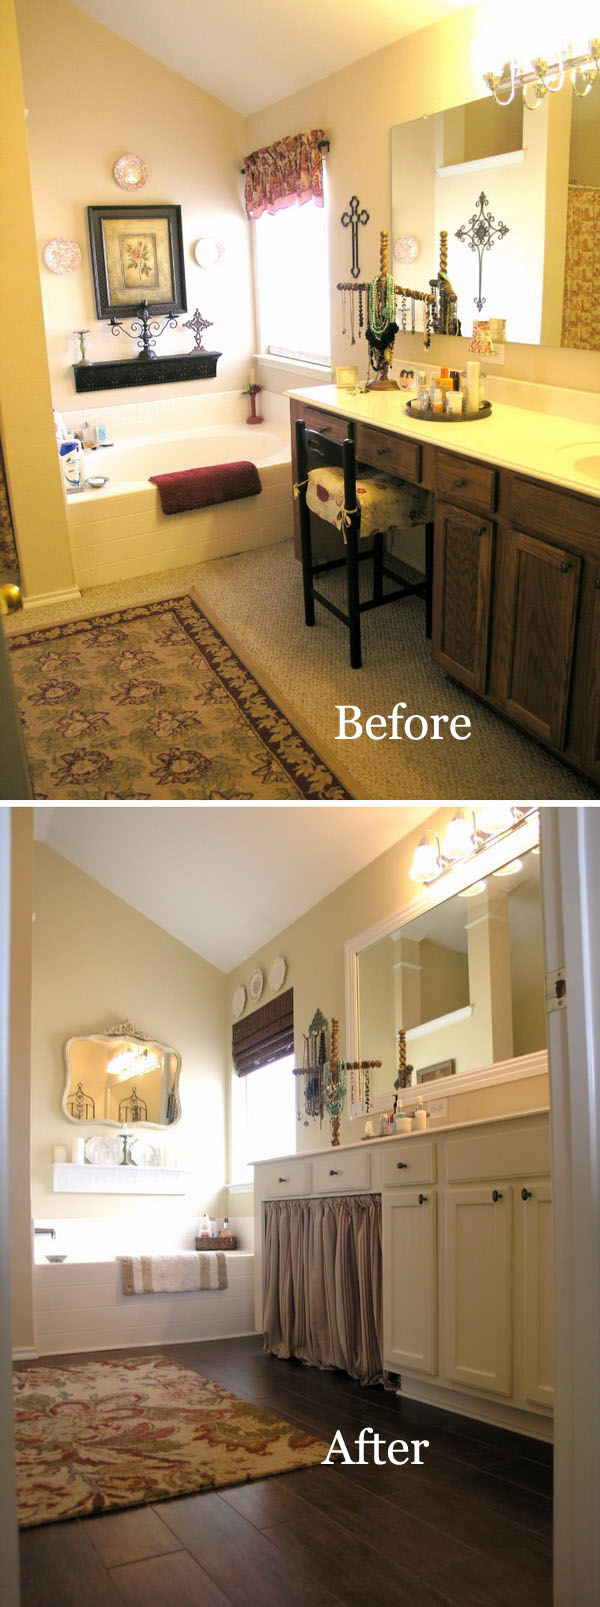 31-32-bathroom-remodel-before-and-after